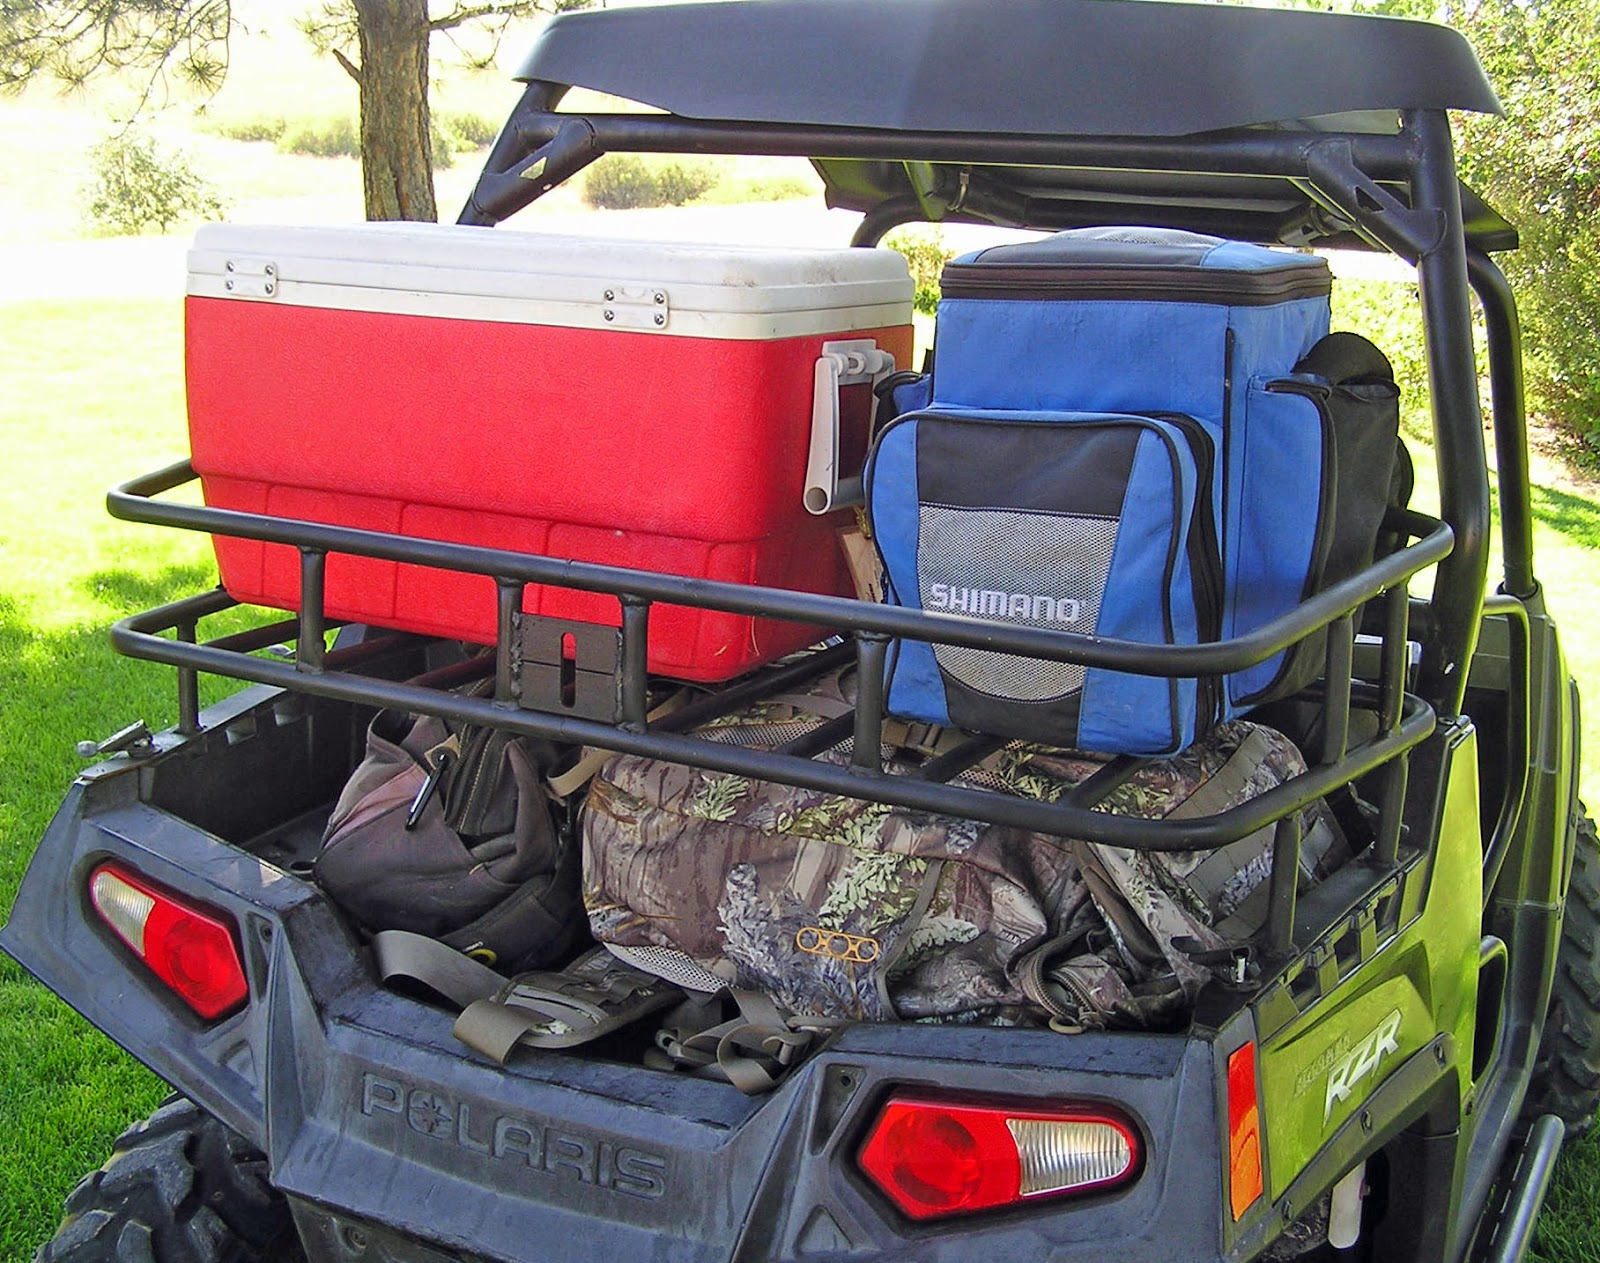 Hornet Outdoors Accessories Can Double The Storage